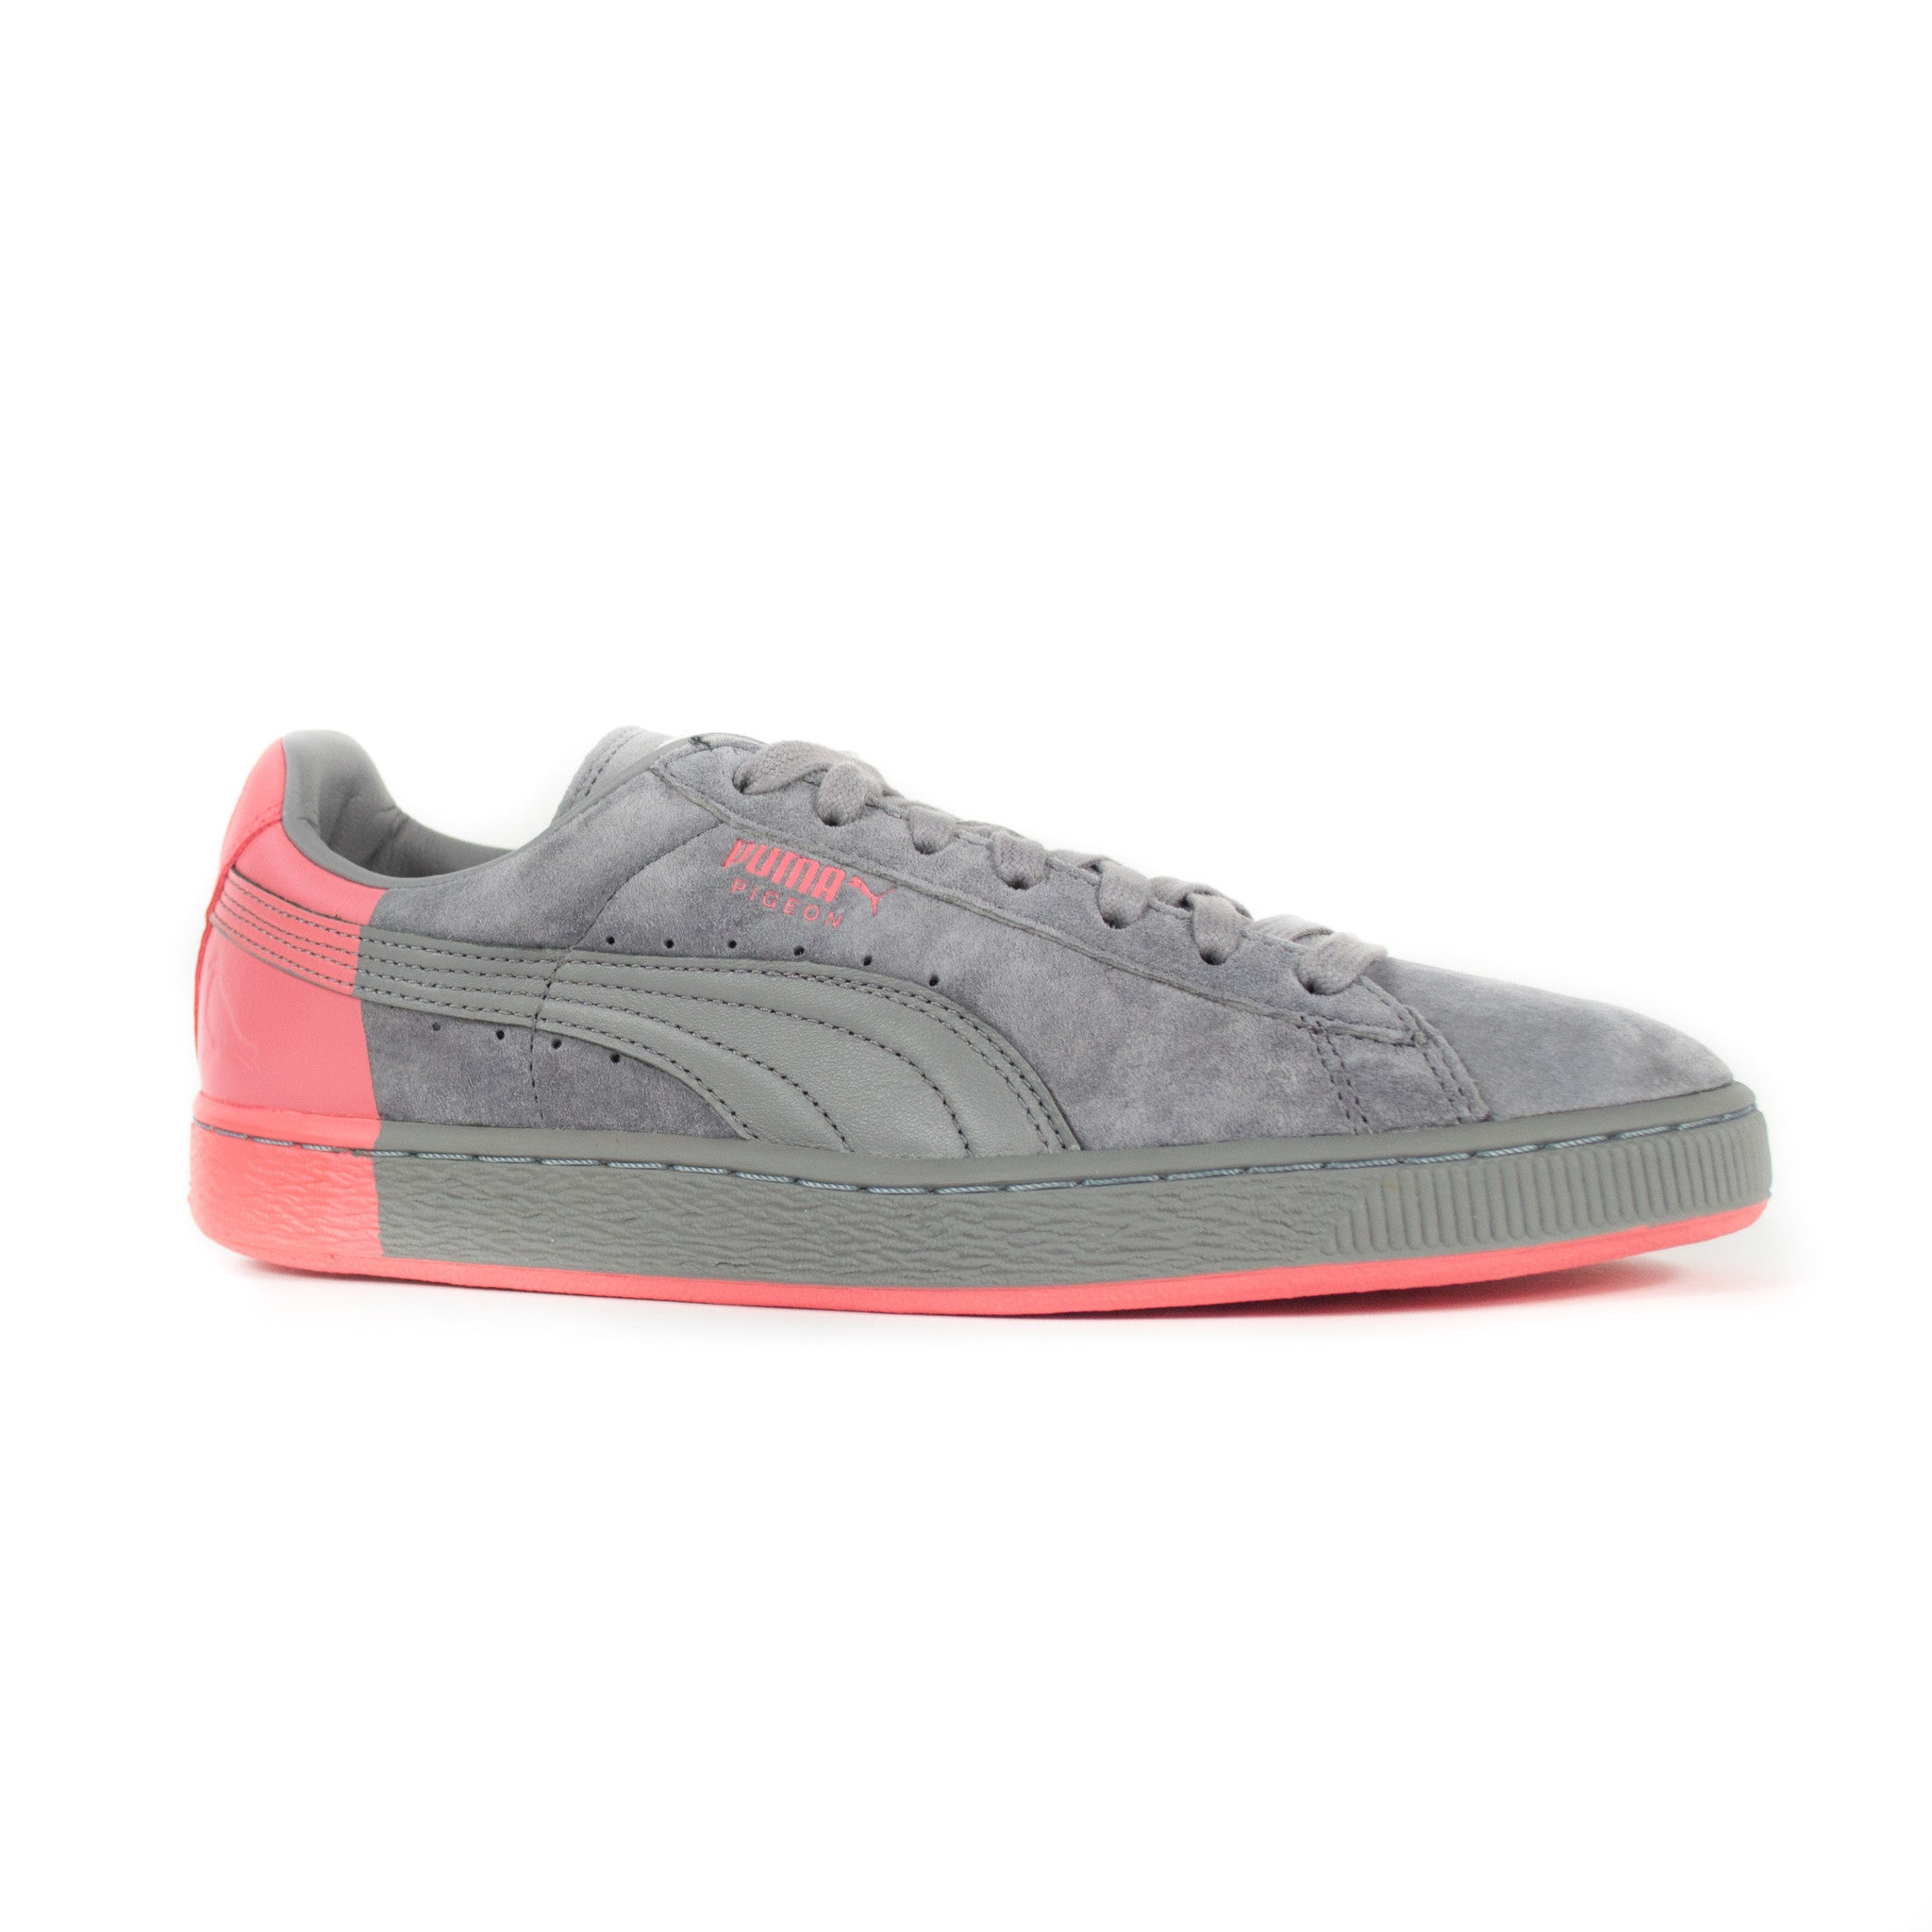 """cd89eb6db6ed38 Staple x Puma Suede """"Frost Grey"""" - Shoes"""